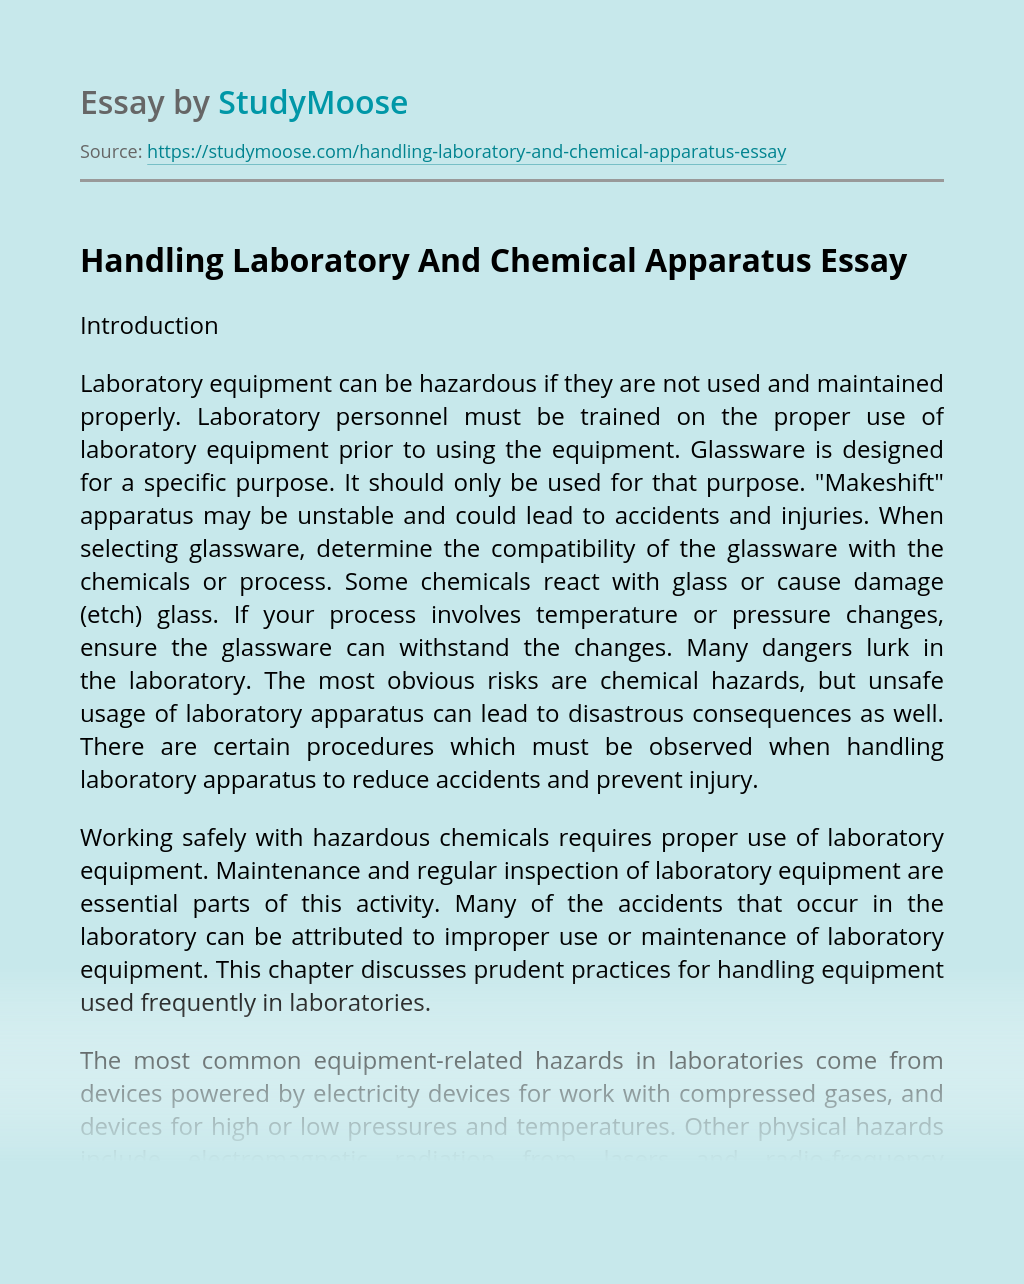 Handling Laboratory And Chemical Apparatus